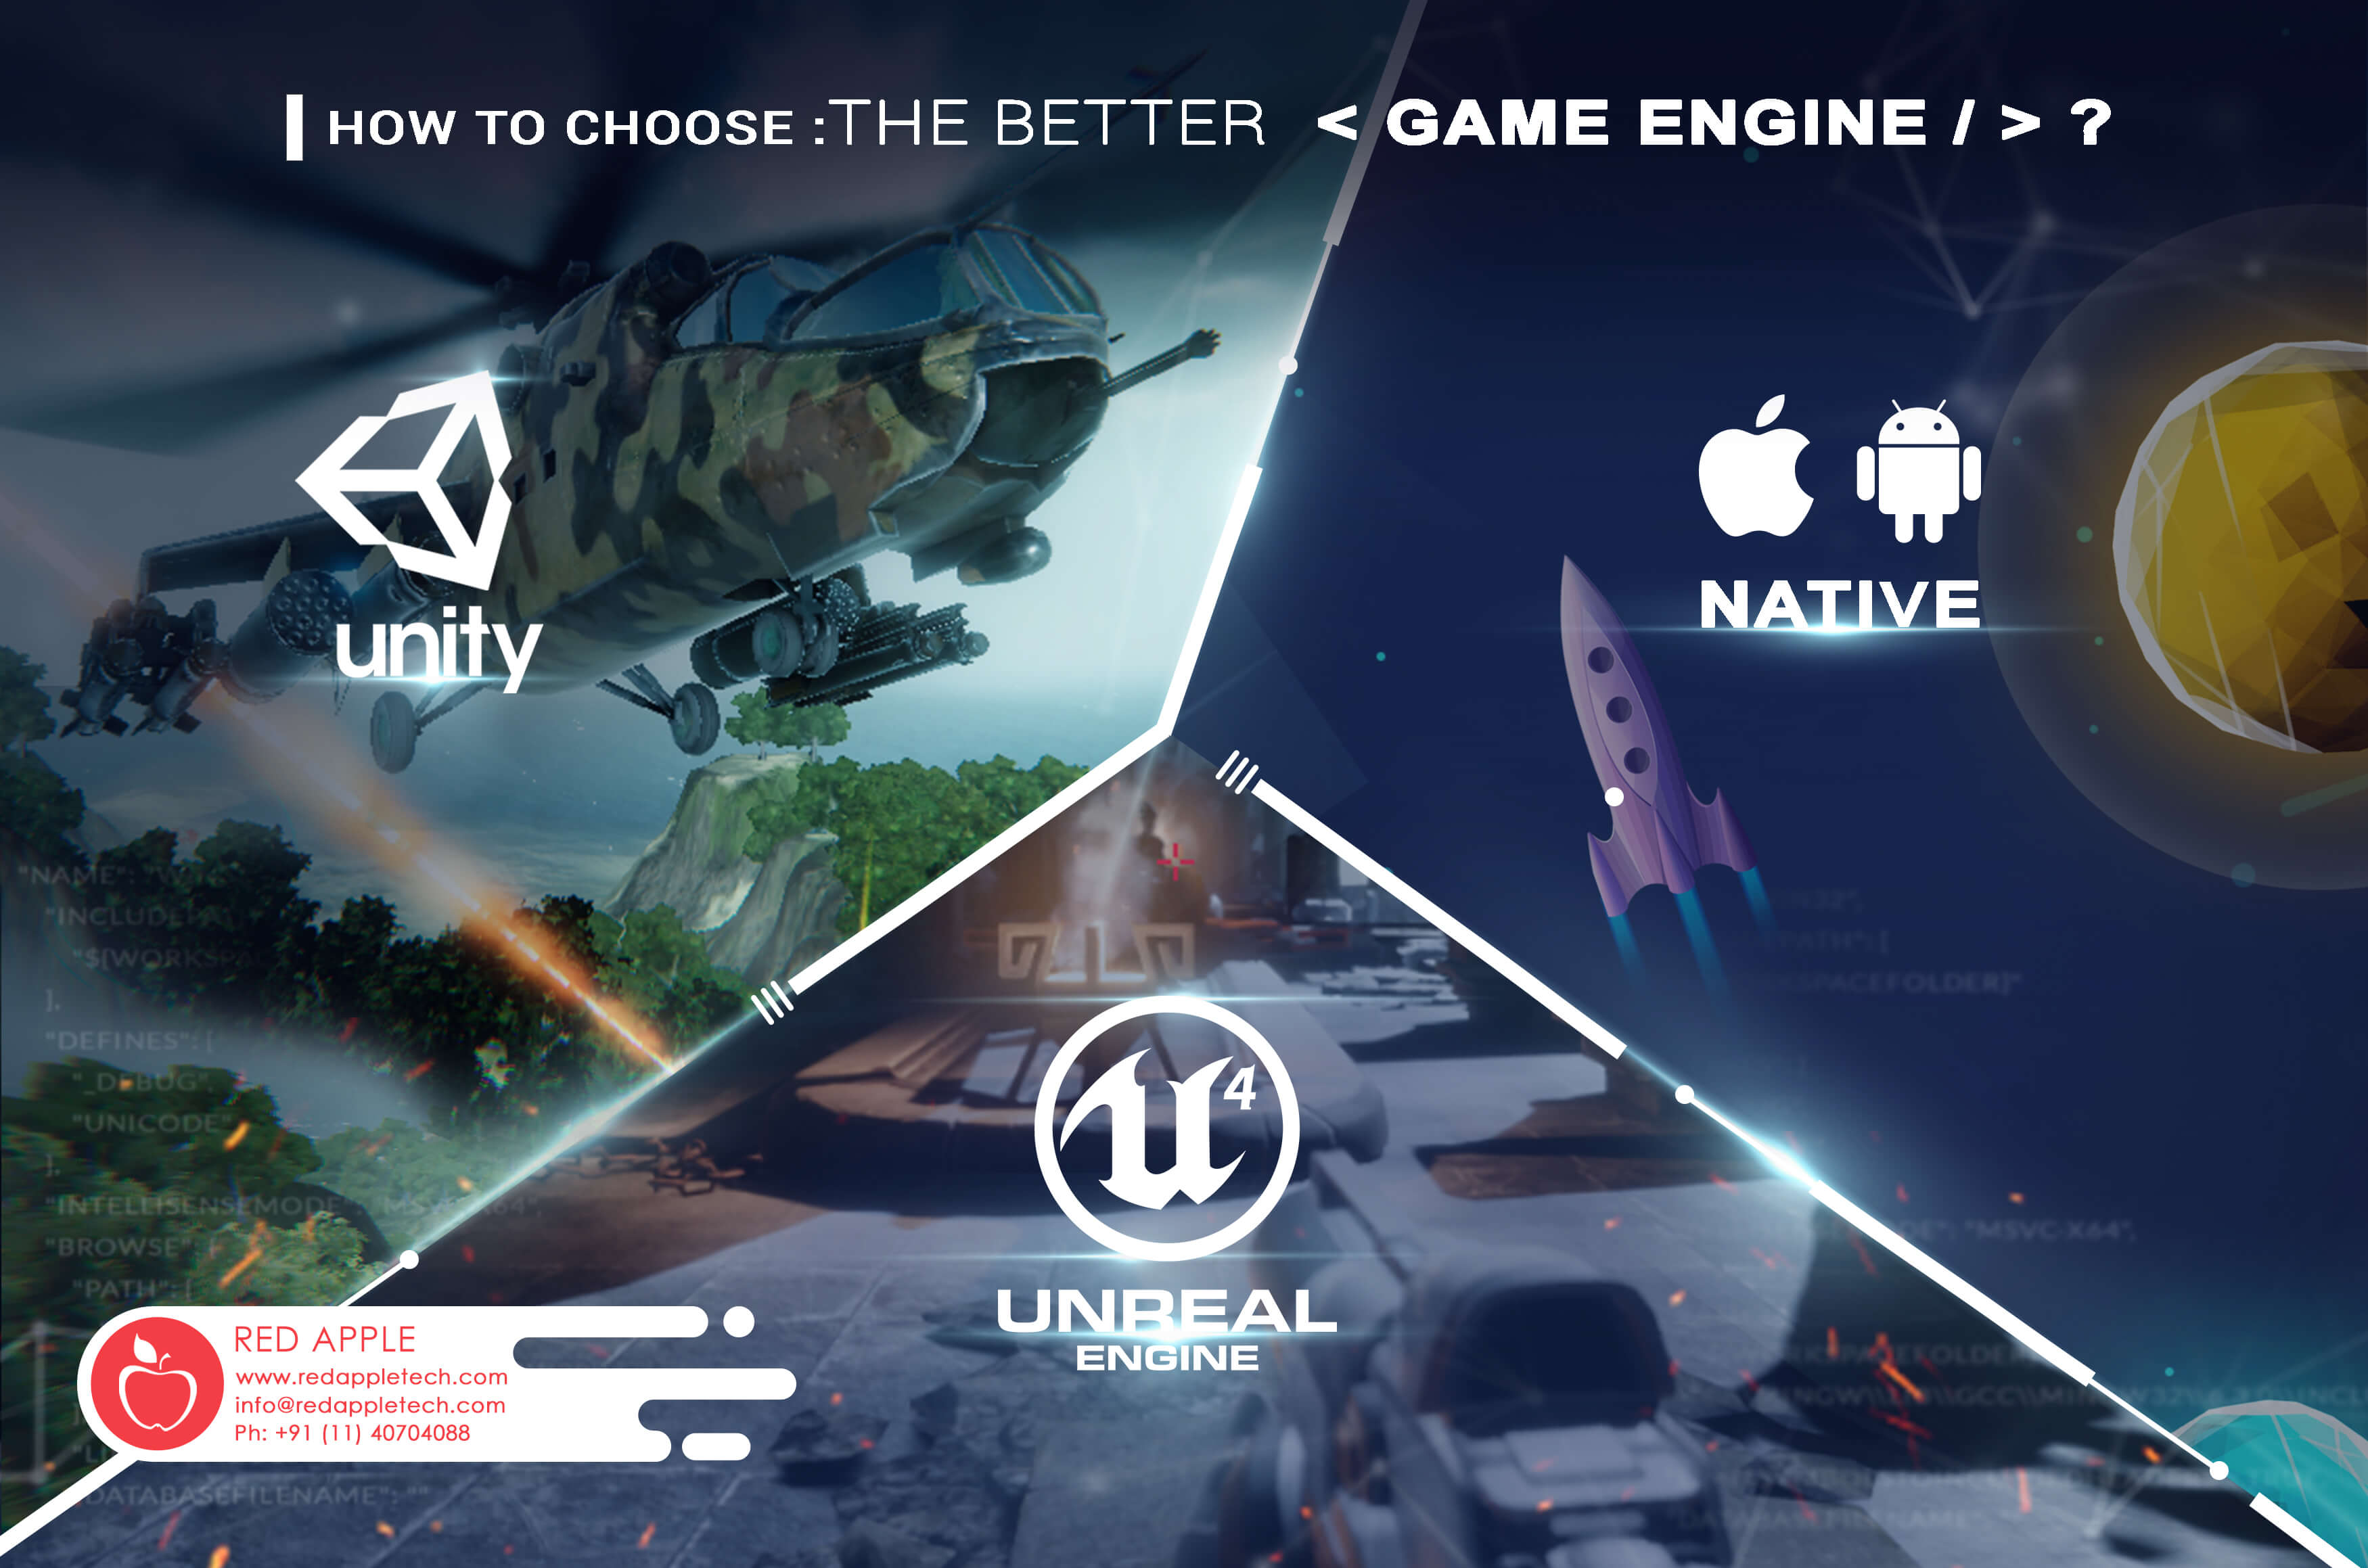 Unity, Unreal, Native : Choose Better Game Engine for Mobile